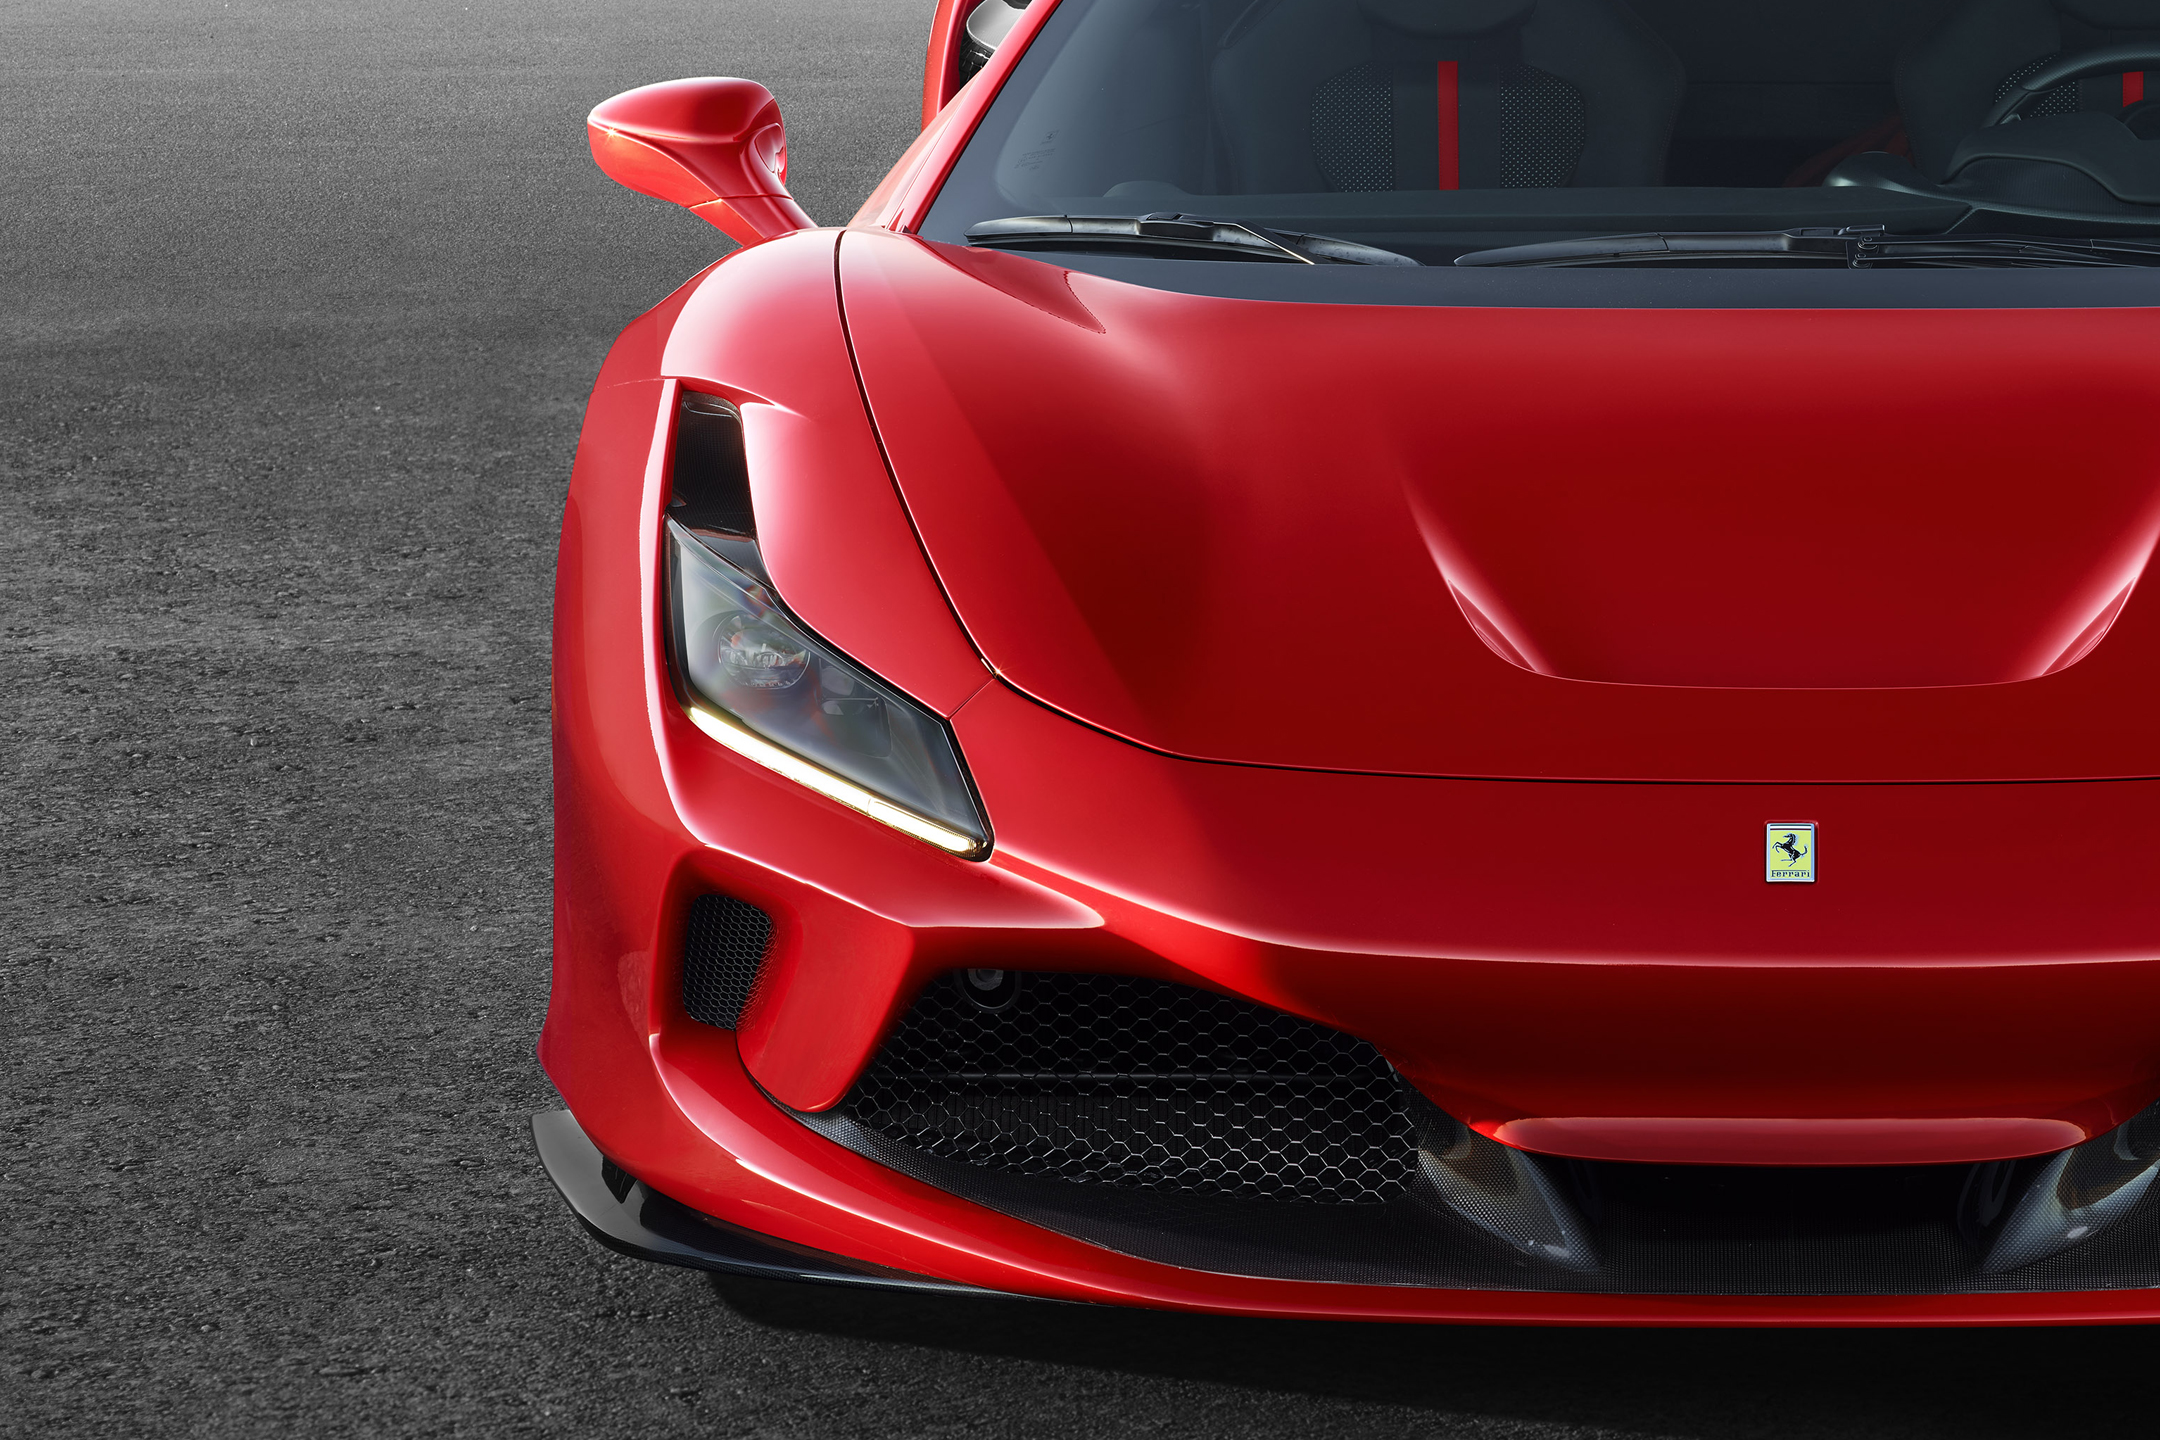 Ferrari F8 Tributo - 2019 - front light